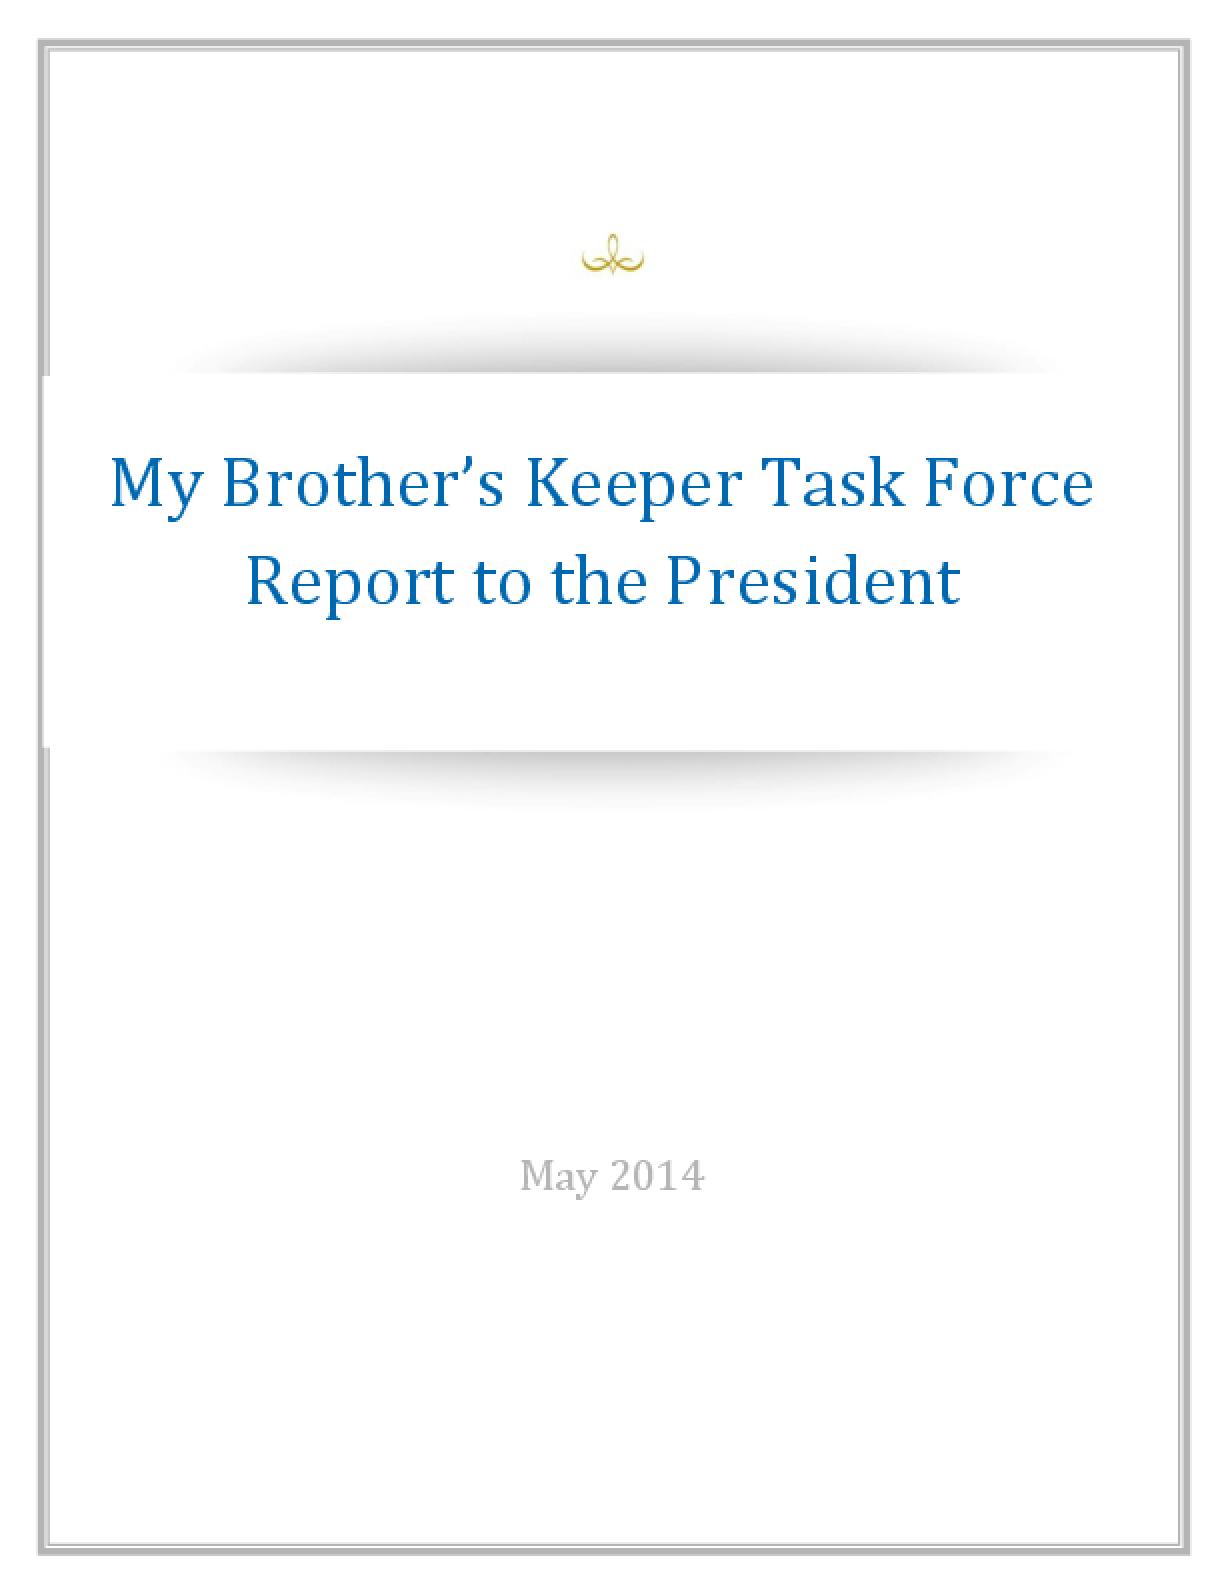 My Brother's Keeper Task Force: Report to the President